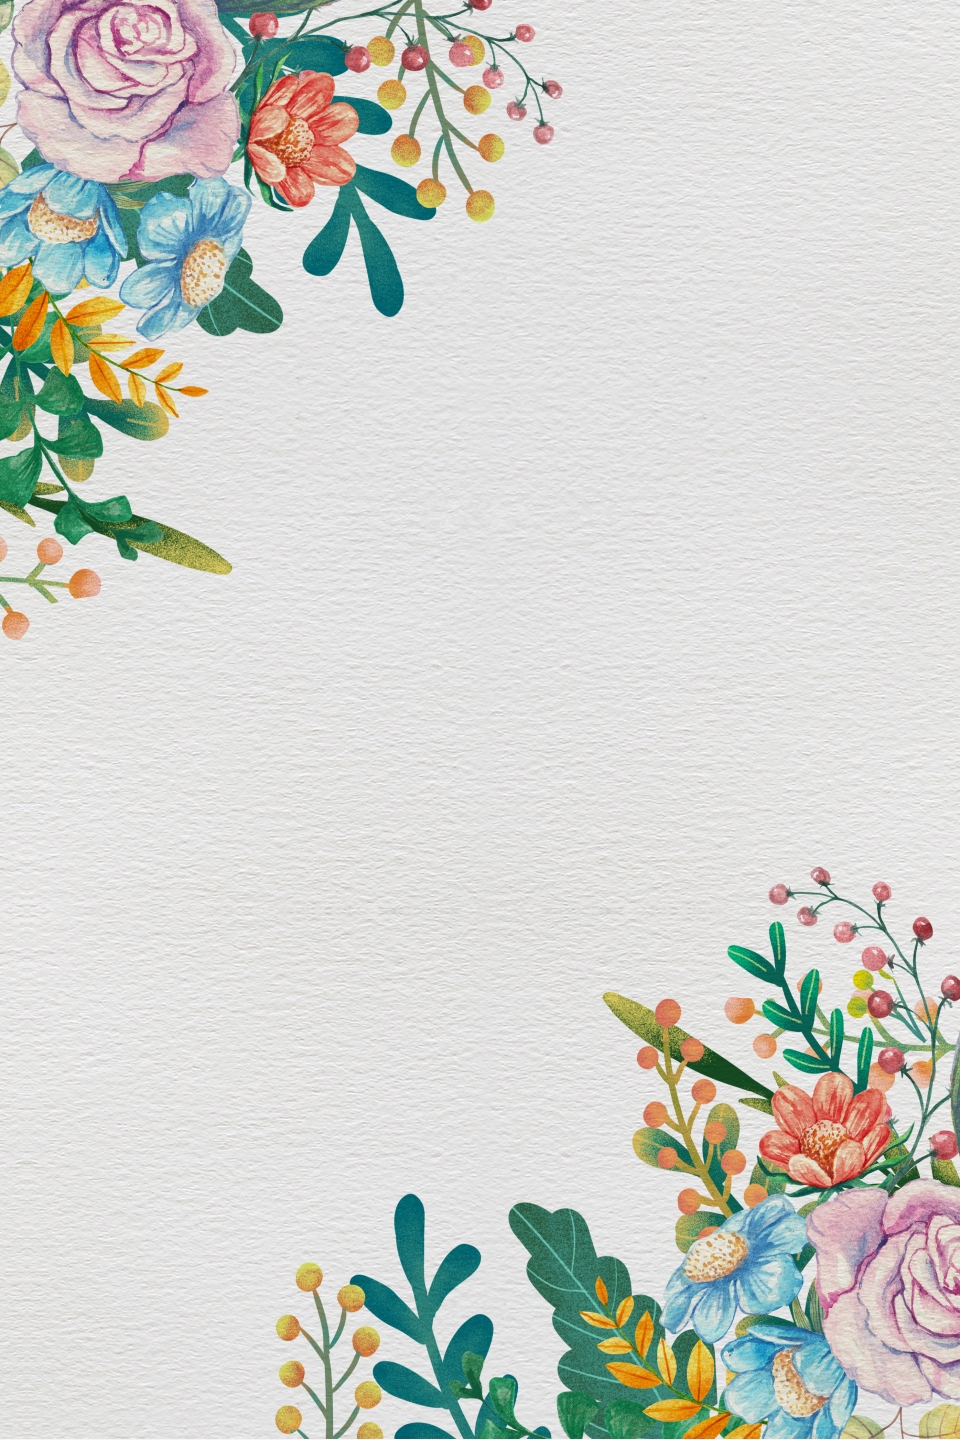 Simple And Elegant Painted Floral Border Vector Background Simple And Elegant Classical Painted Background Image For Free Download